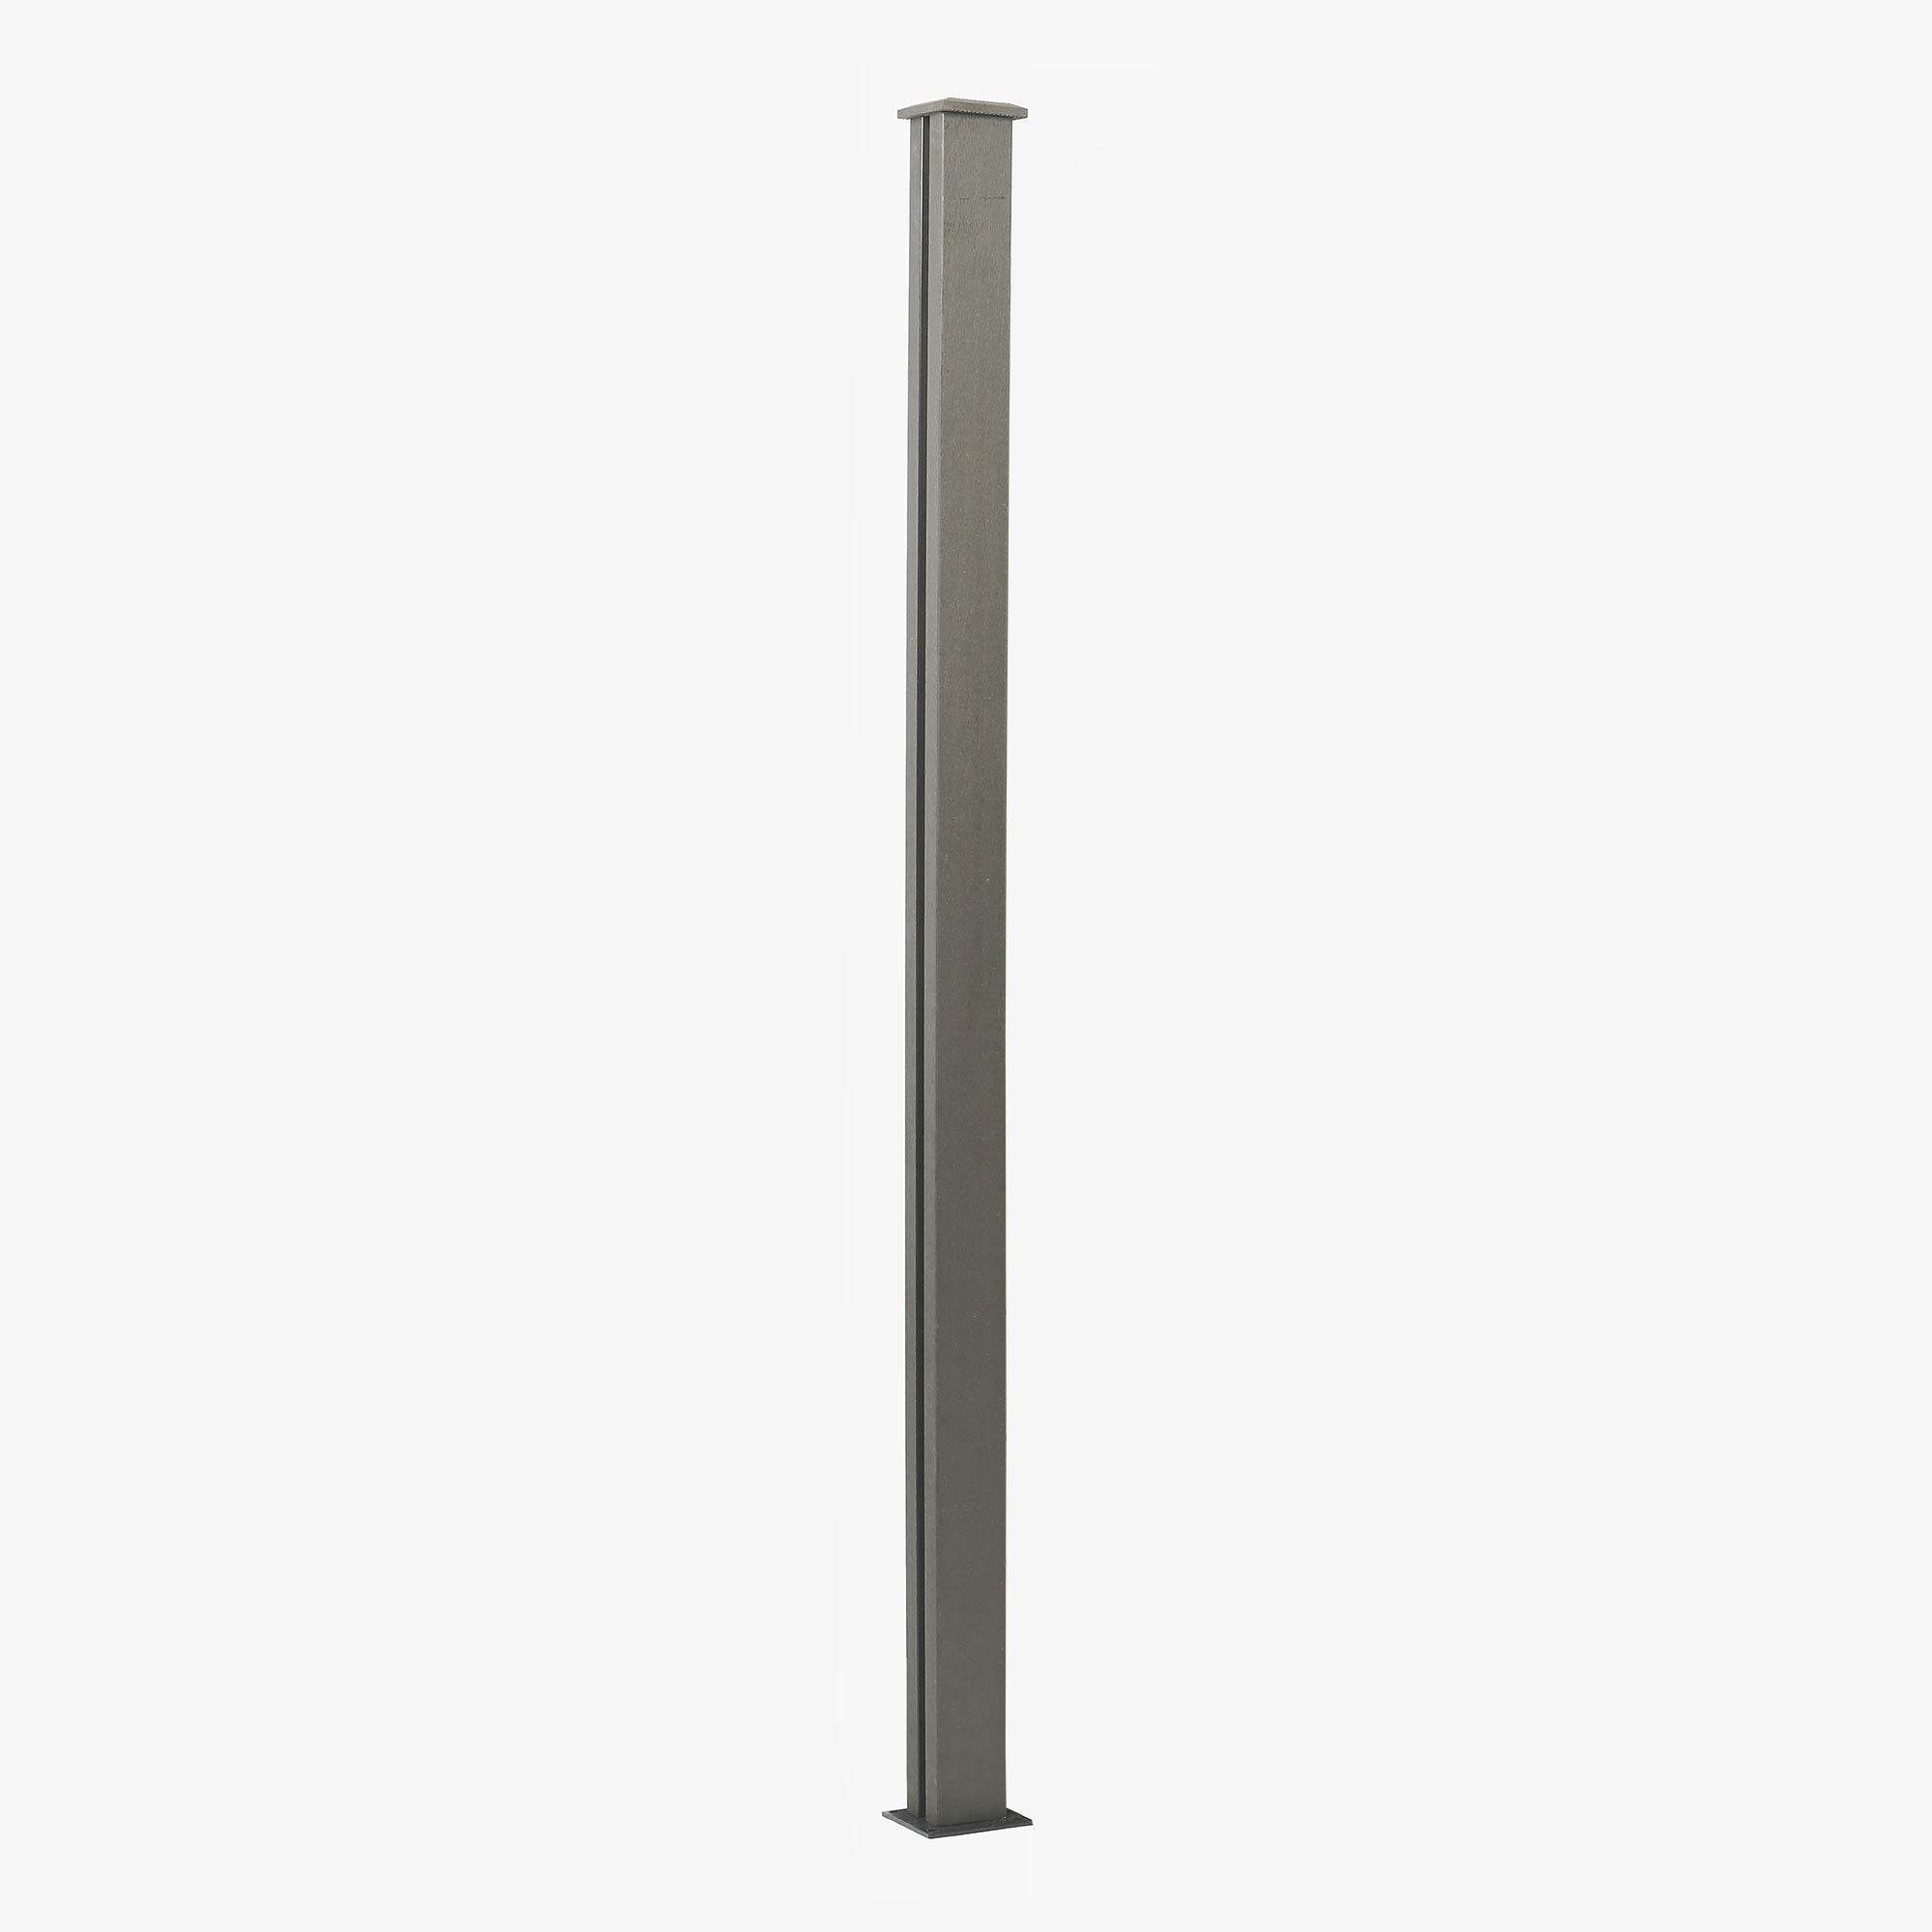 EnviroBuild Pioneer Additional Fence post - stone